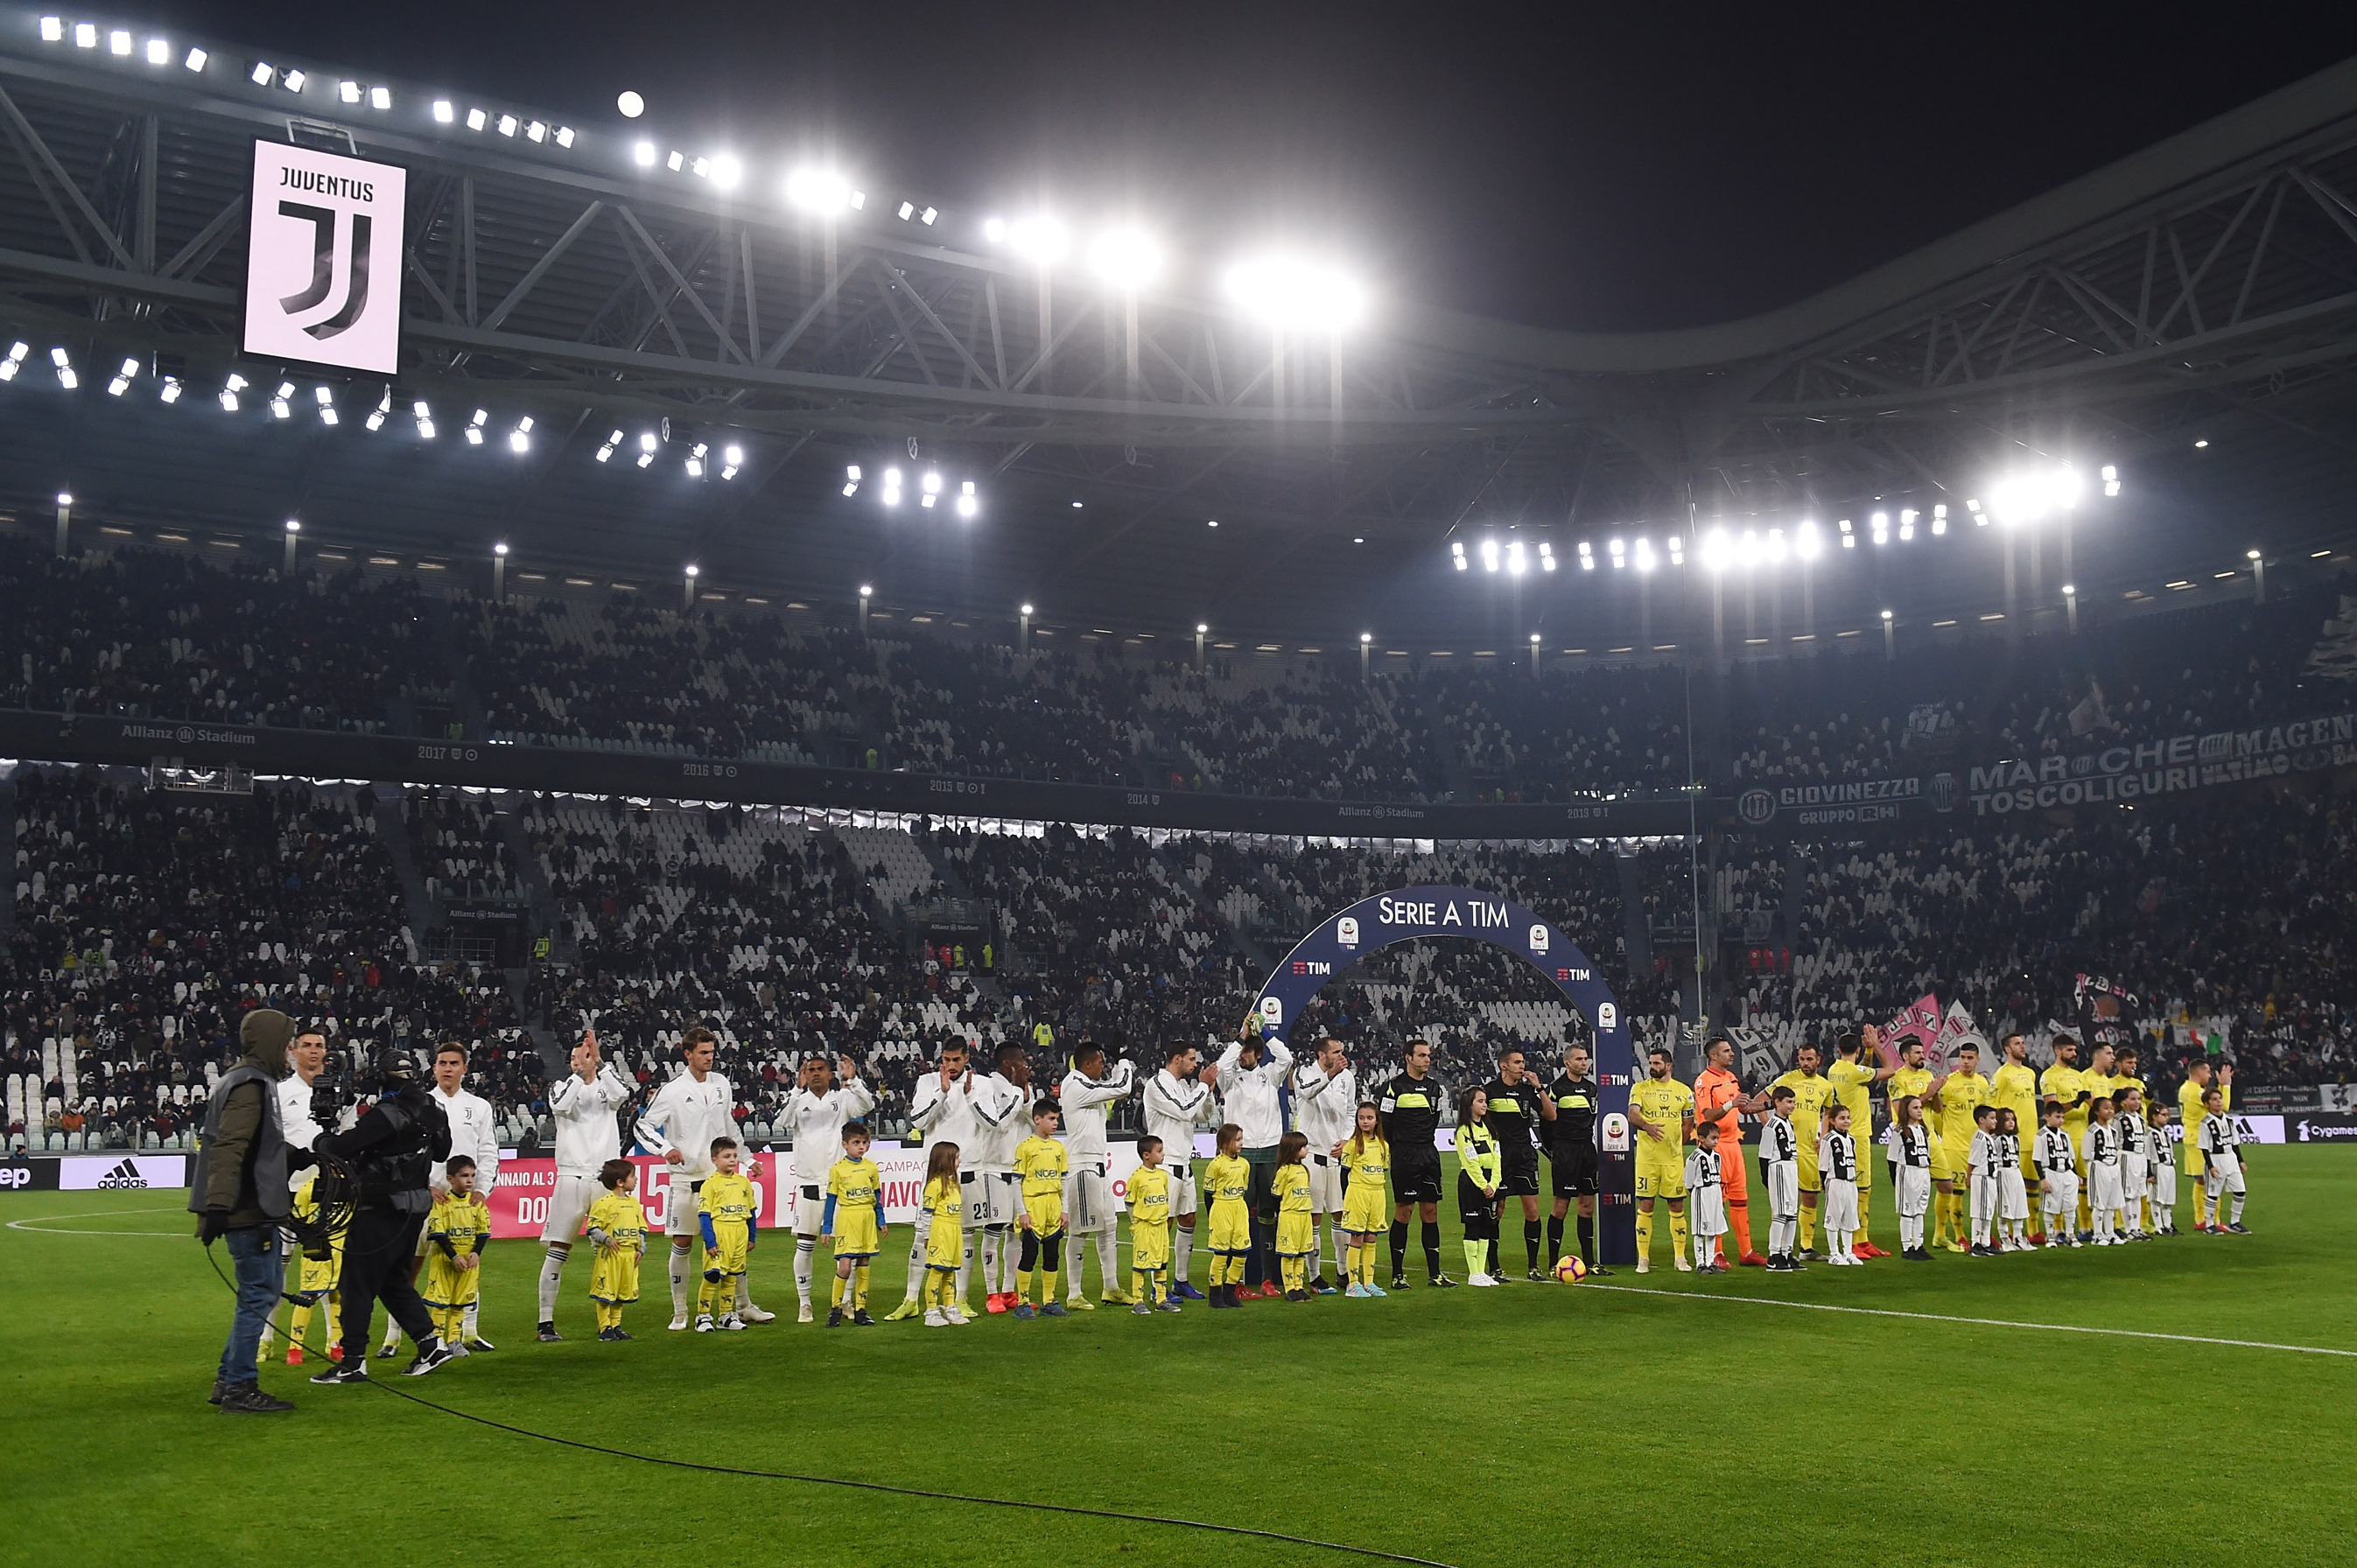 Why Are There So Many Empty Seats At Juventus Home Games Bleacher Report Latest News Videos And Highlights